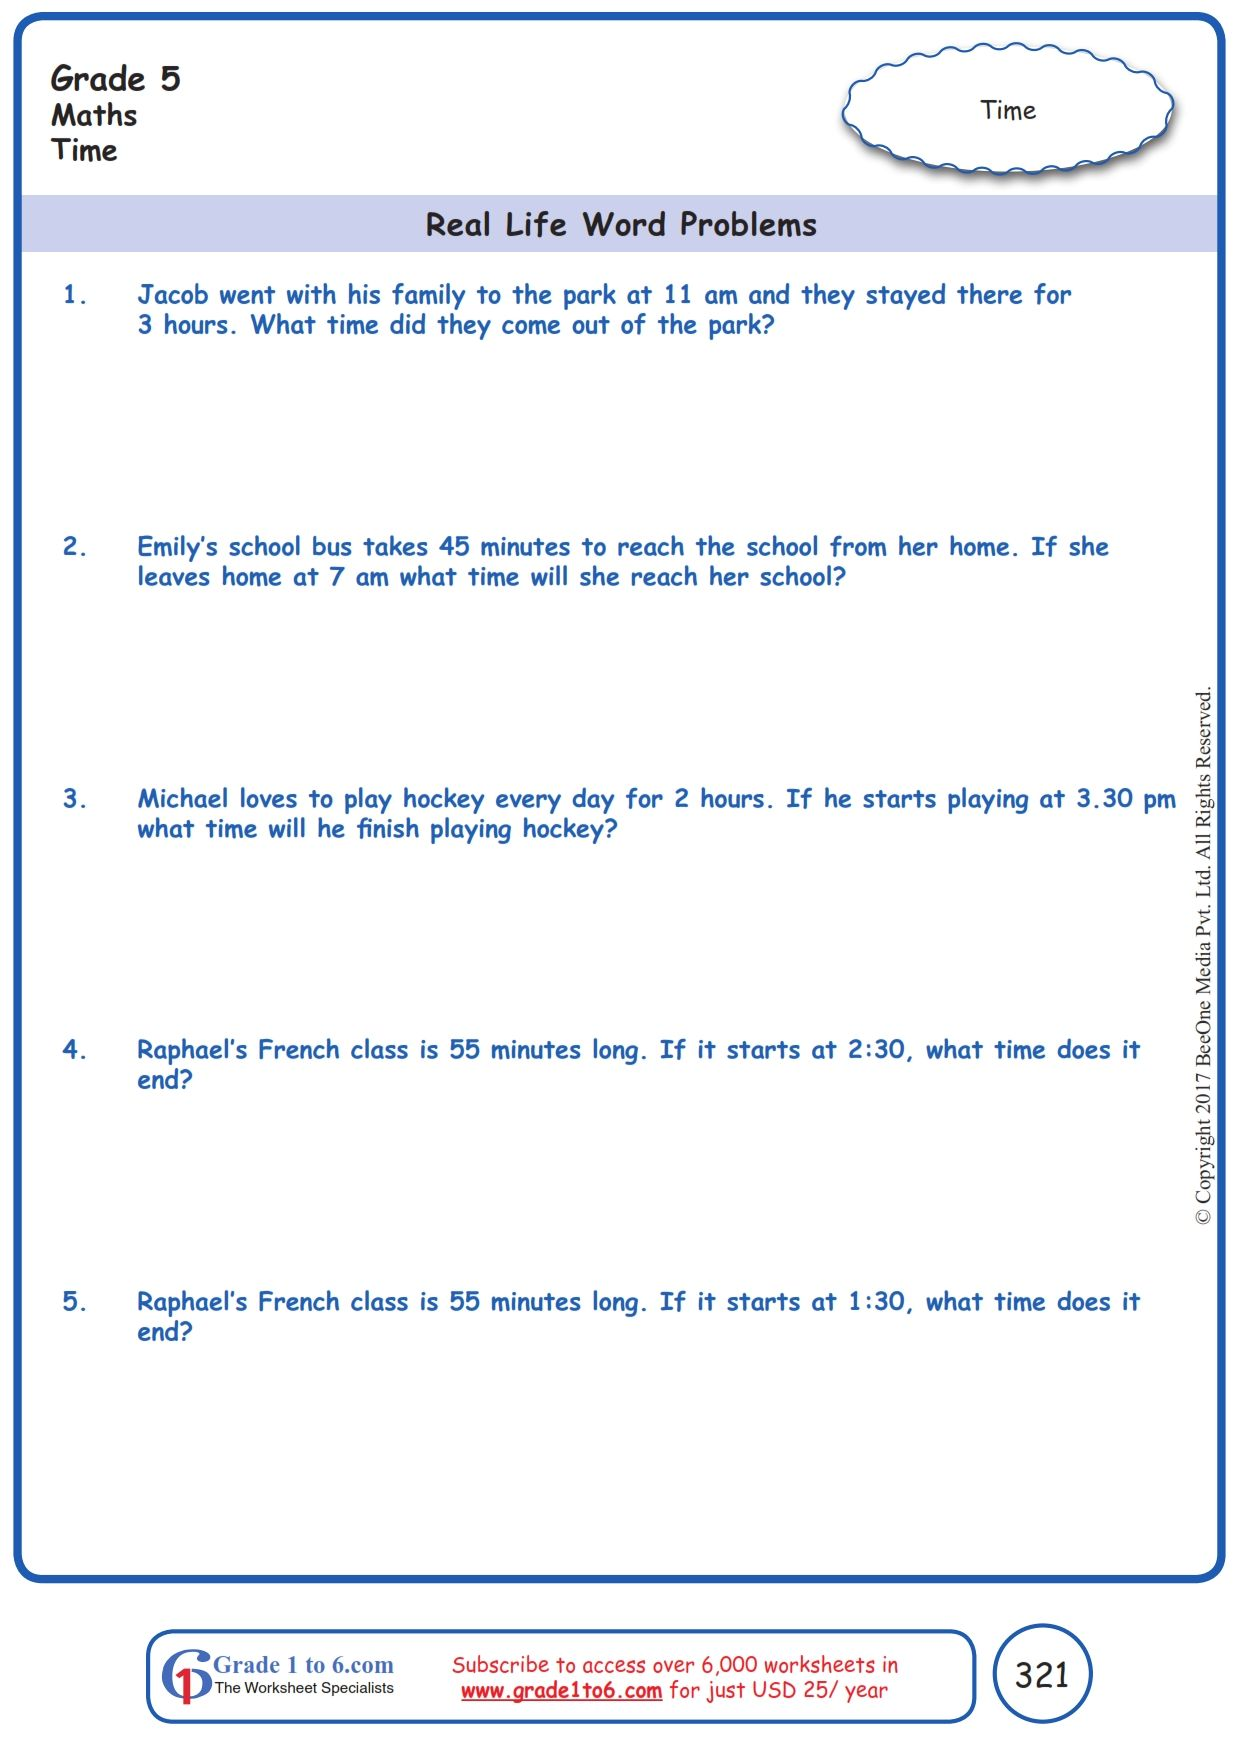 hight resolution of Worksheet Grade 5 Math Real Life Word Problems   Word problem worksheets